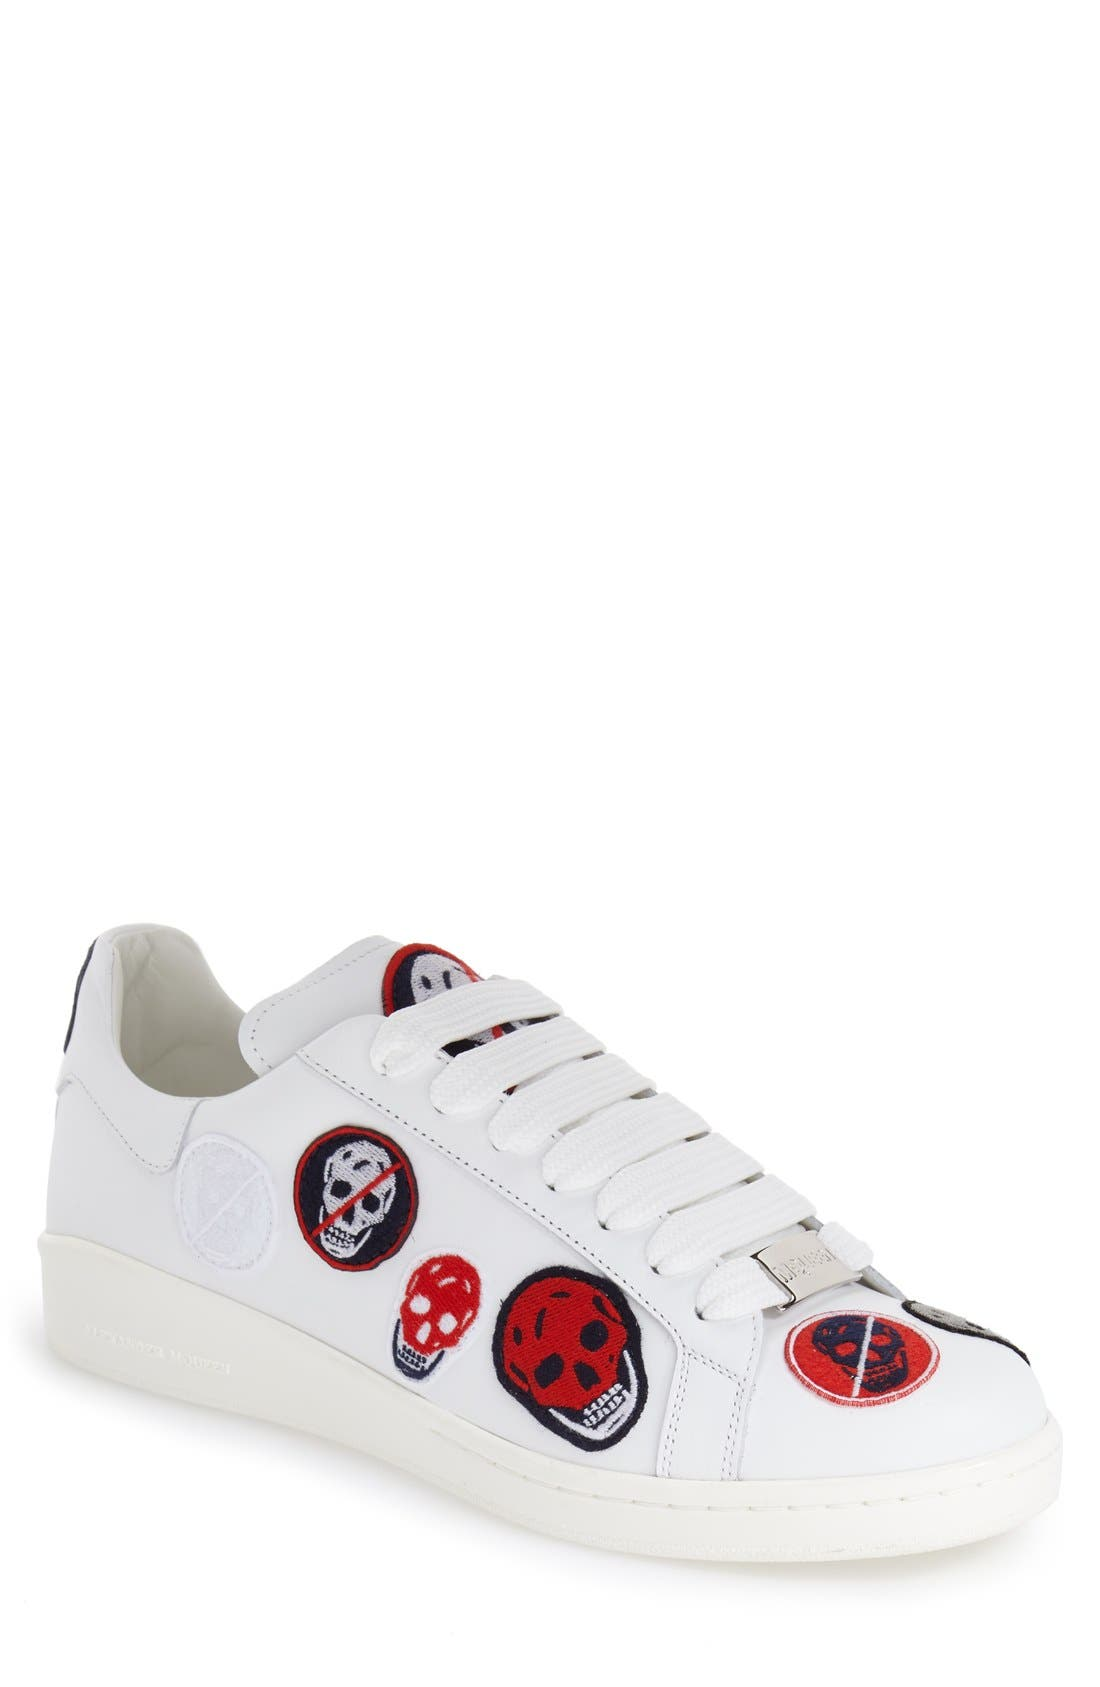 'Skull Patch' Sneaker, Main, color, 104